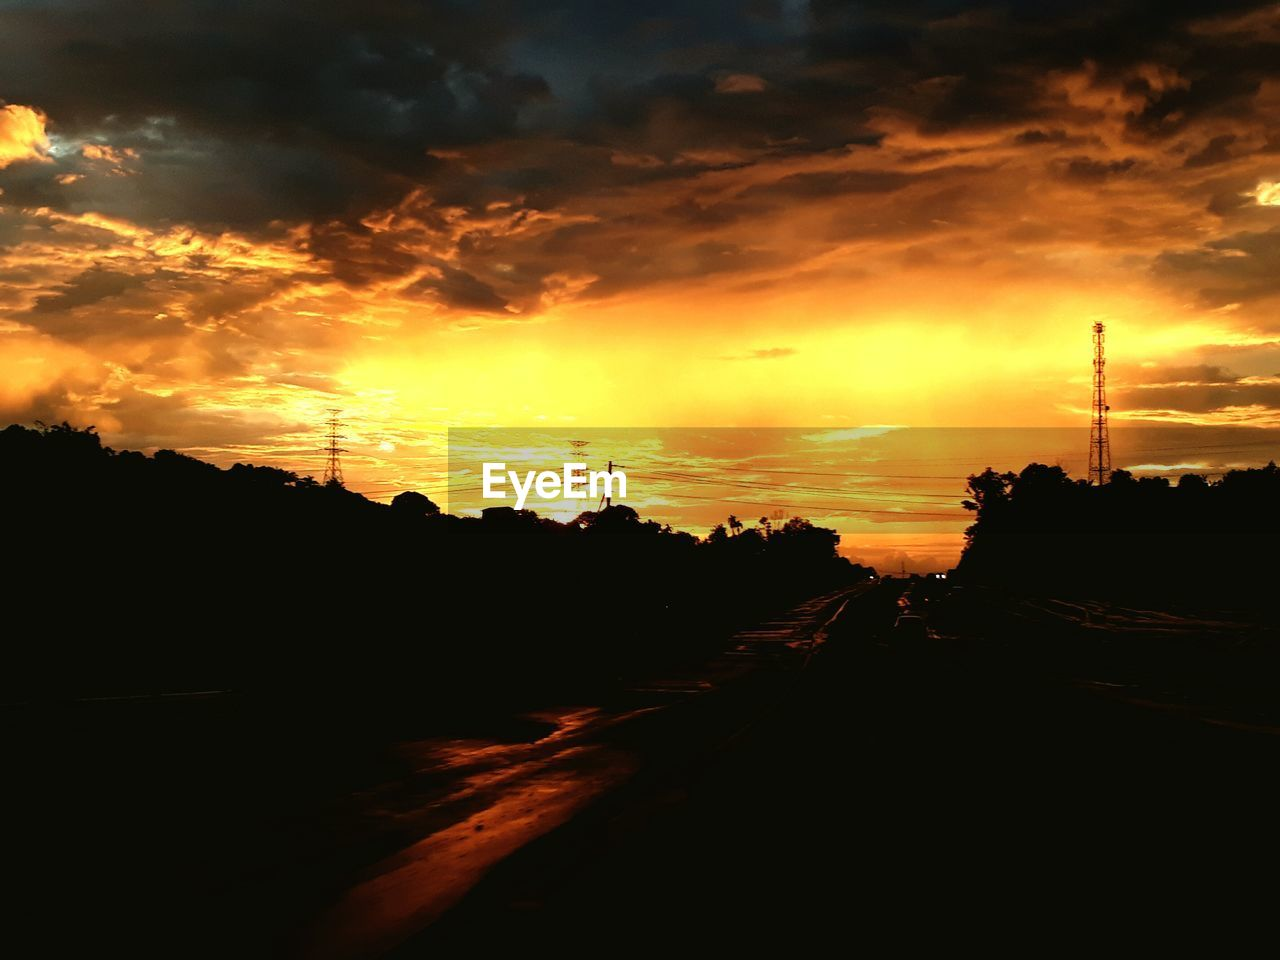 sunset, silhouette, sky, orange color, cloud - sky, dramatic sky, road, the way forward, no people, transportation, nature, electricity pylon, scenics, outdoors, electricity, tree, beauty in nature, telephone line